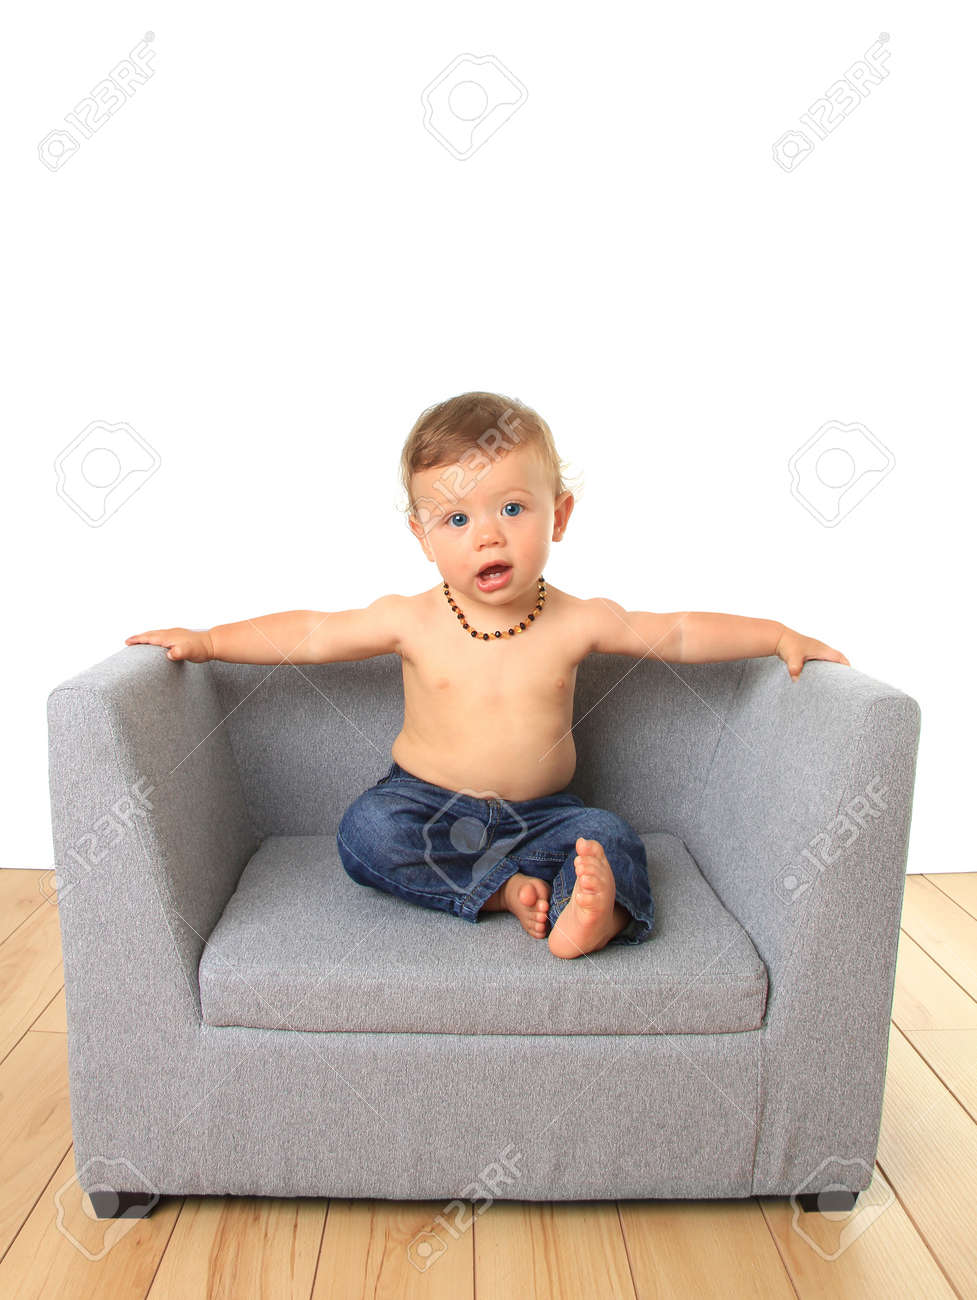 Adorable Ten Month Old Baby Boy Seated On A Sofa Chair Stock Photo